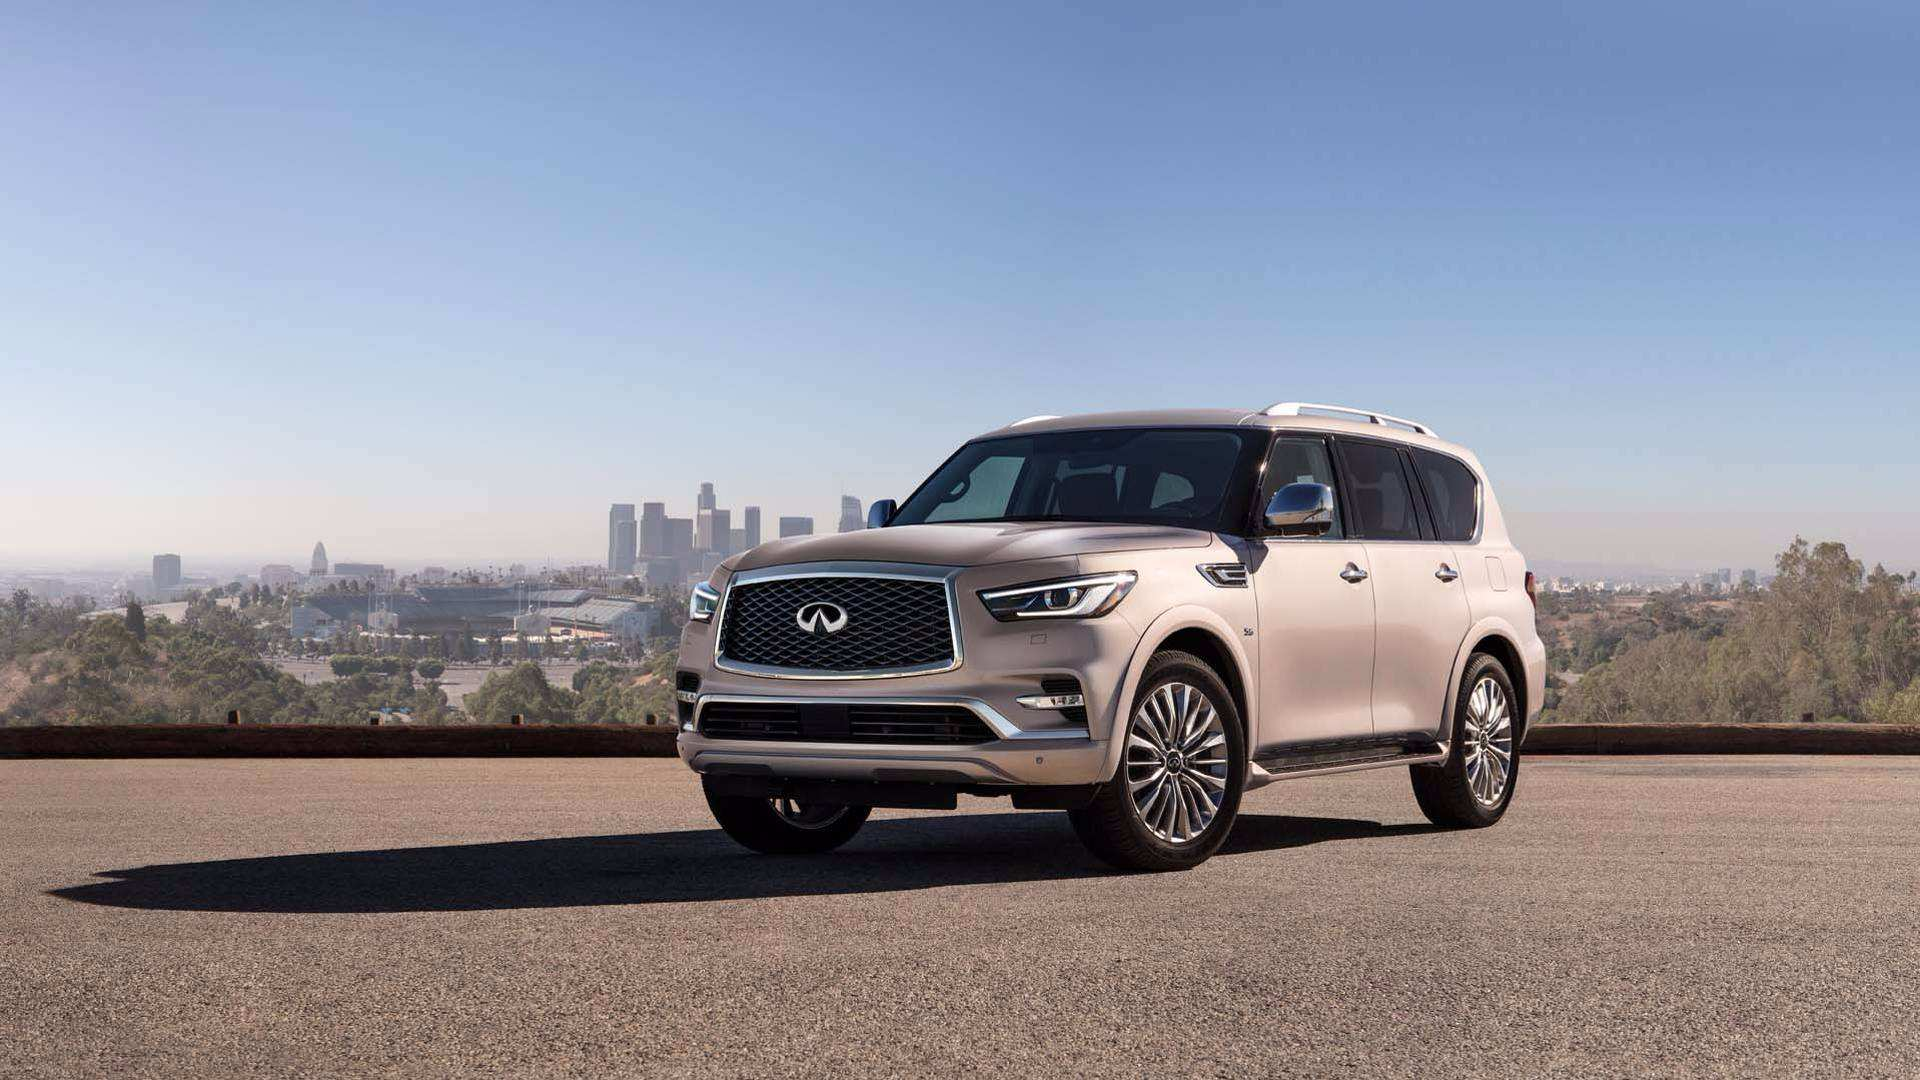 97 Best 2020 Infiniti Qx80 New Body Style Release Date And Concept